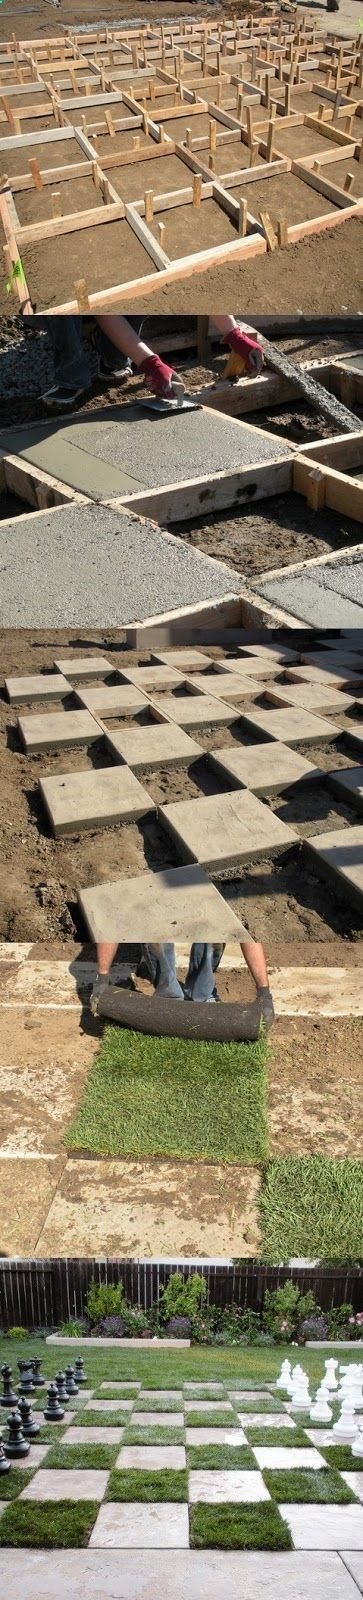 Alternative Gardning: Giant Chess Board